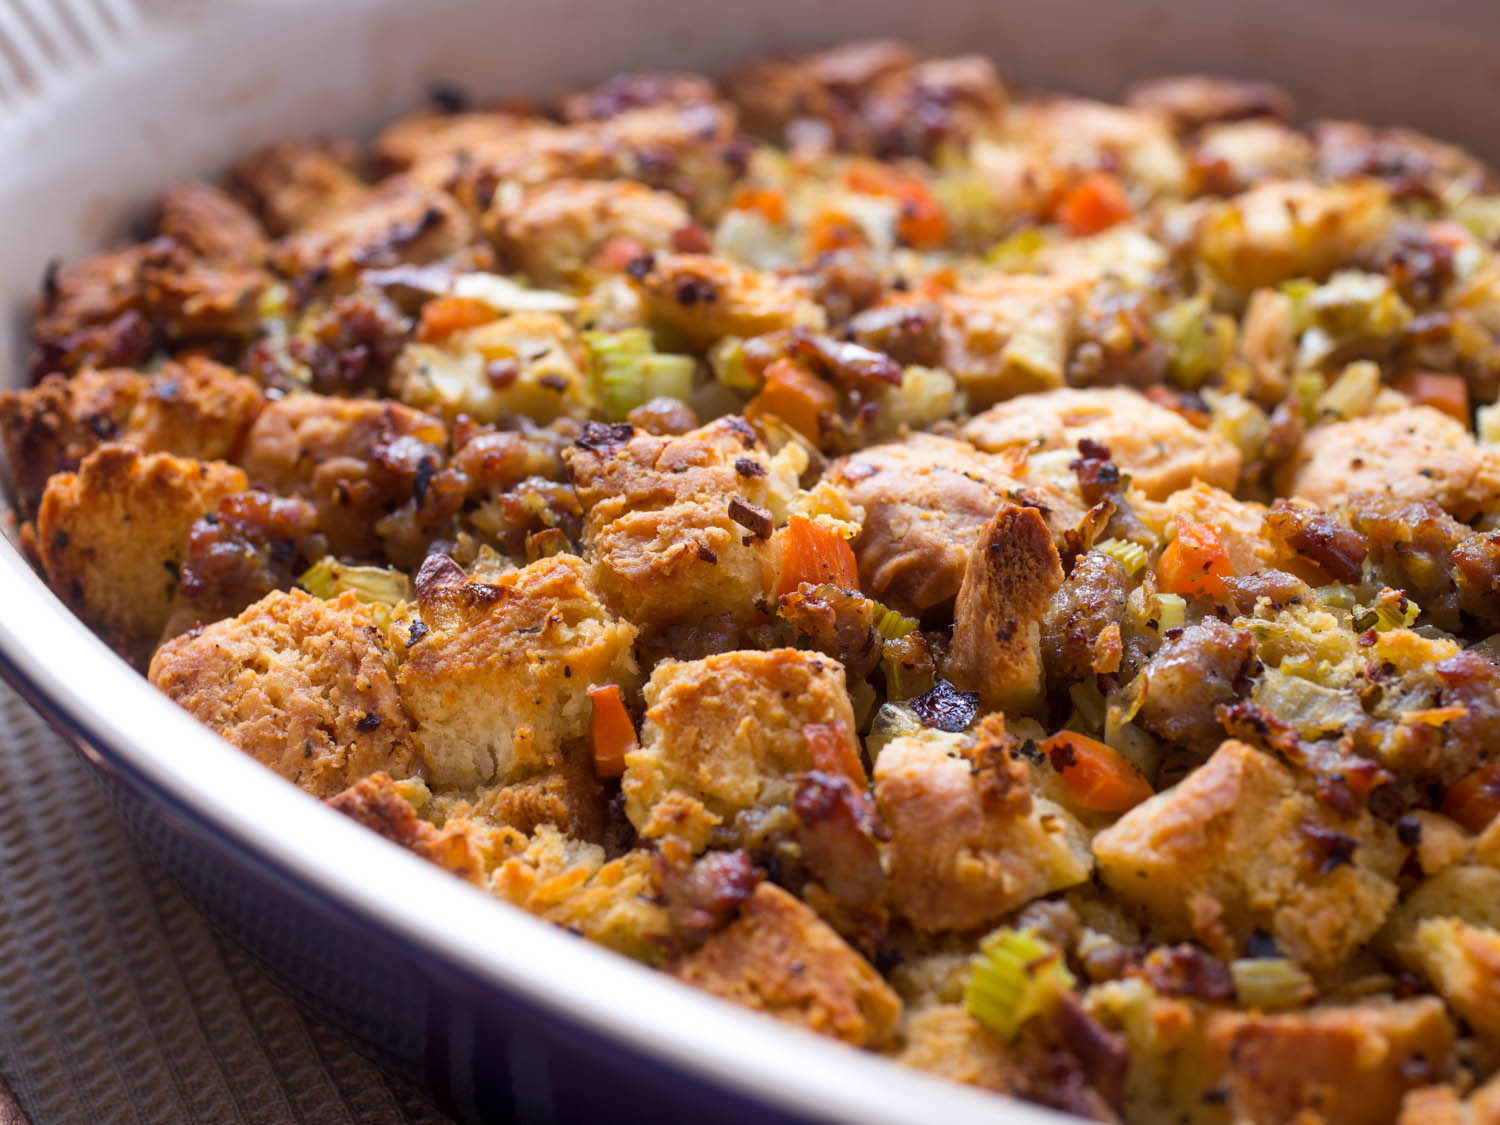 Turkey Stuffing Recipes For Thanksgiving  Popeye s Buttermilk Biscuit Stuffing Recipe